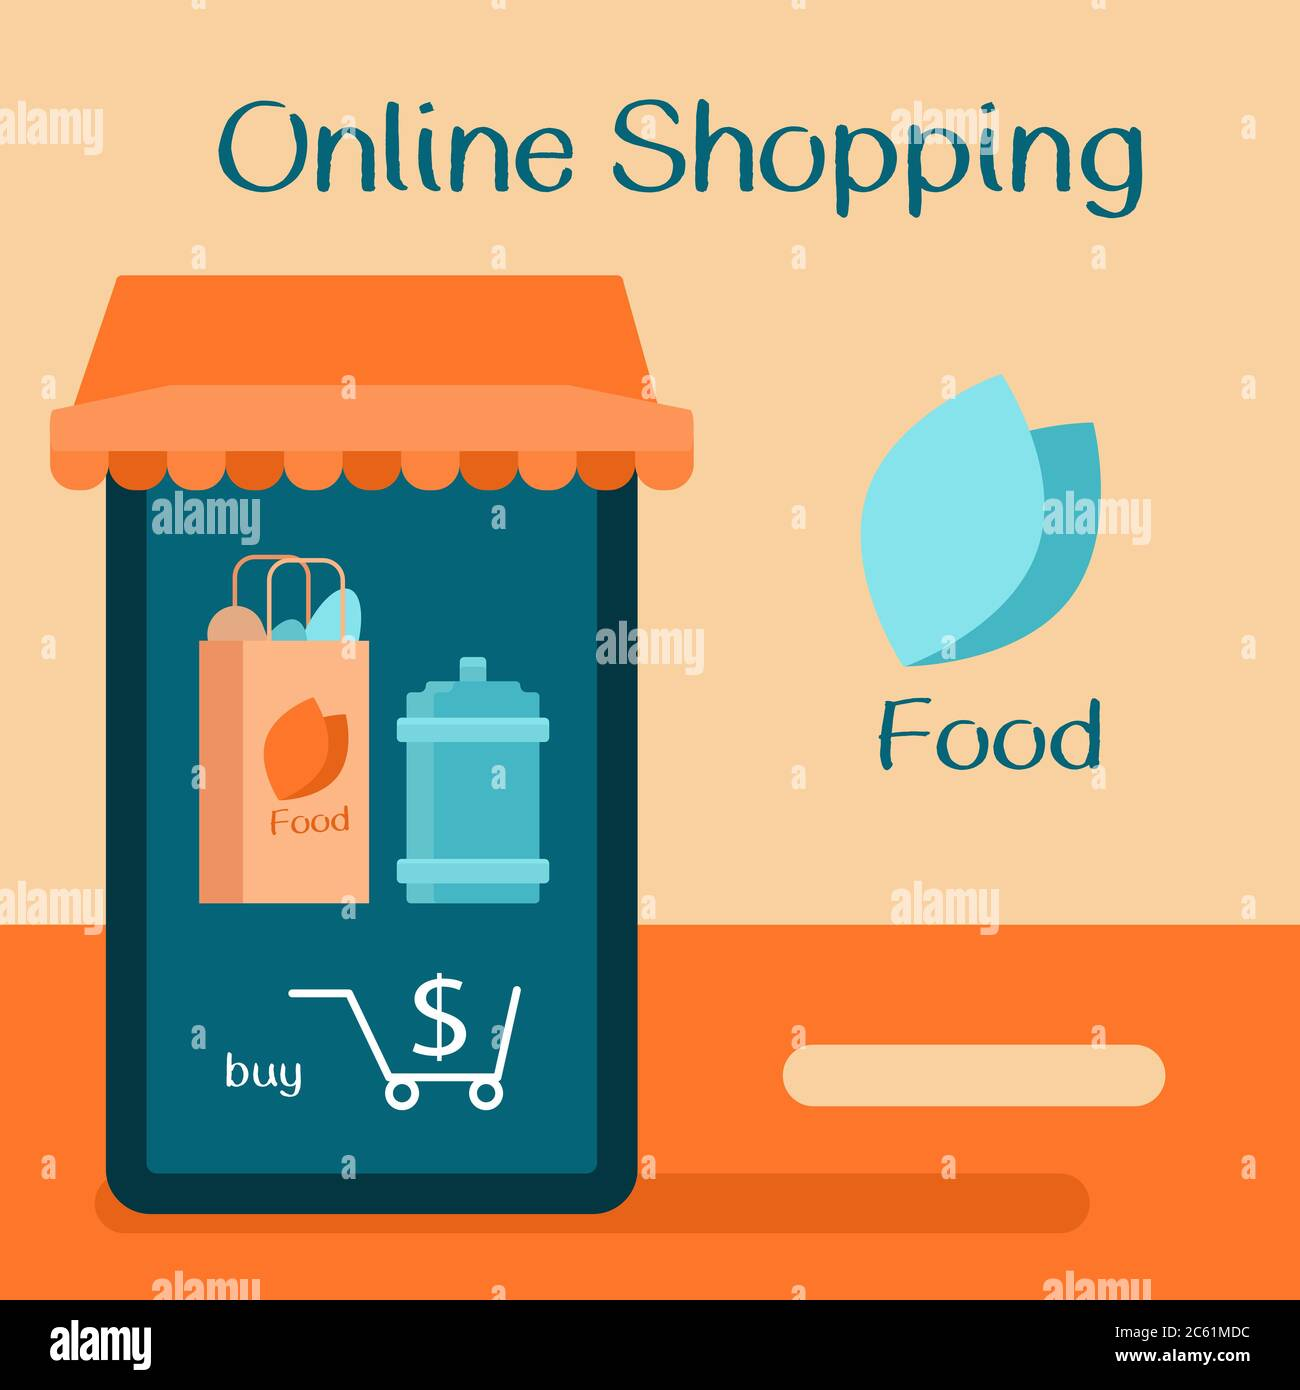 Poster Online Kaufen Online Shopping Text On Beige Backdrop. Food Delivery With Copy Space For Social Banner, Web Store Or Courier Service Poster. Online Shop Logo Or Info Stock Vector Image & Art - Alamy